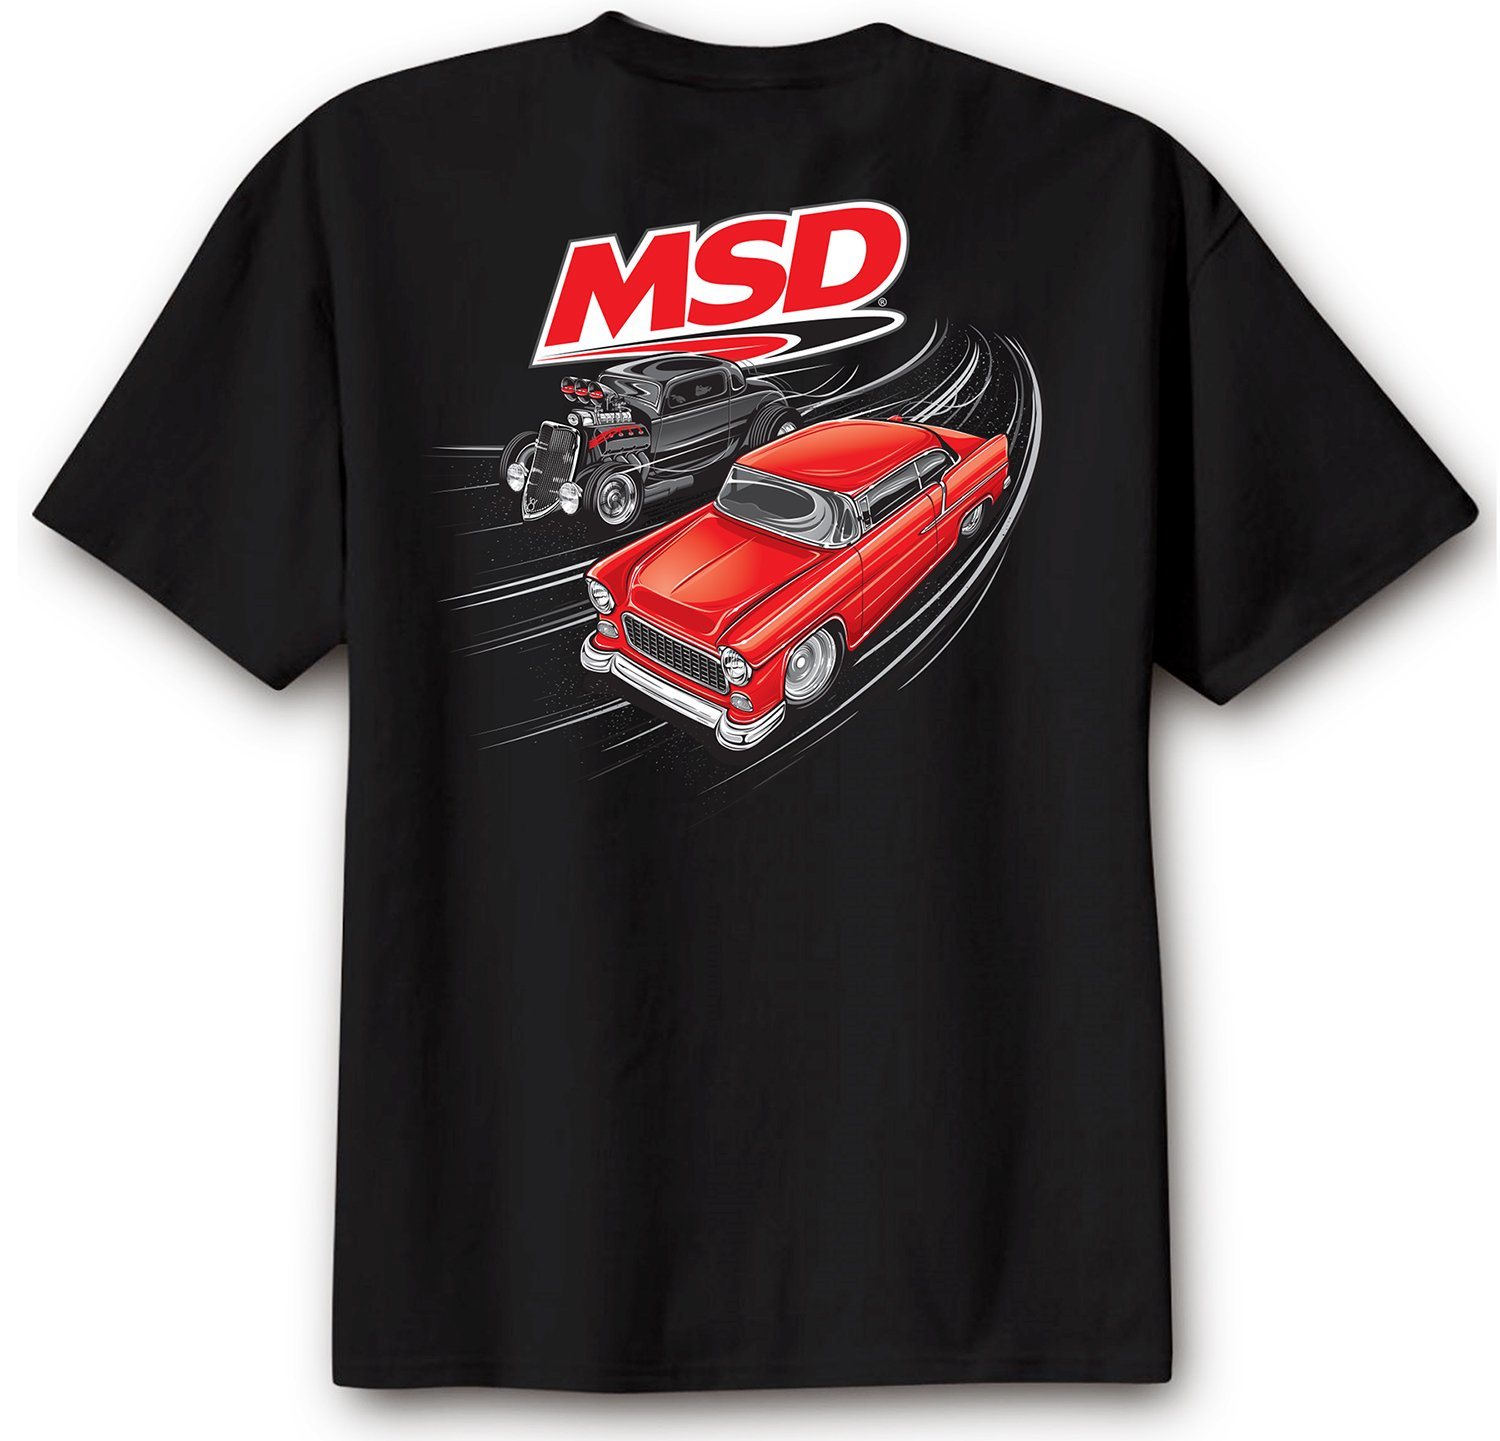 95146 - MSD Racer T-Shirt, Black, XX-Large Image